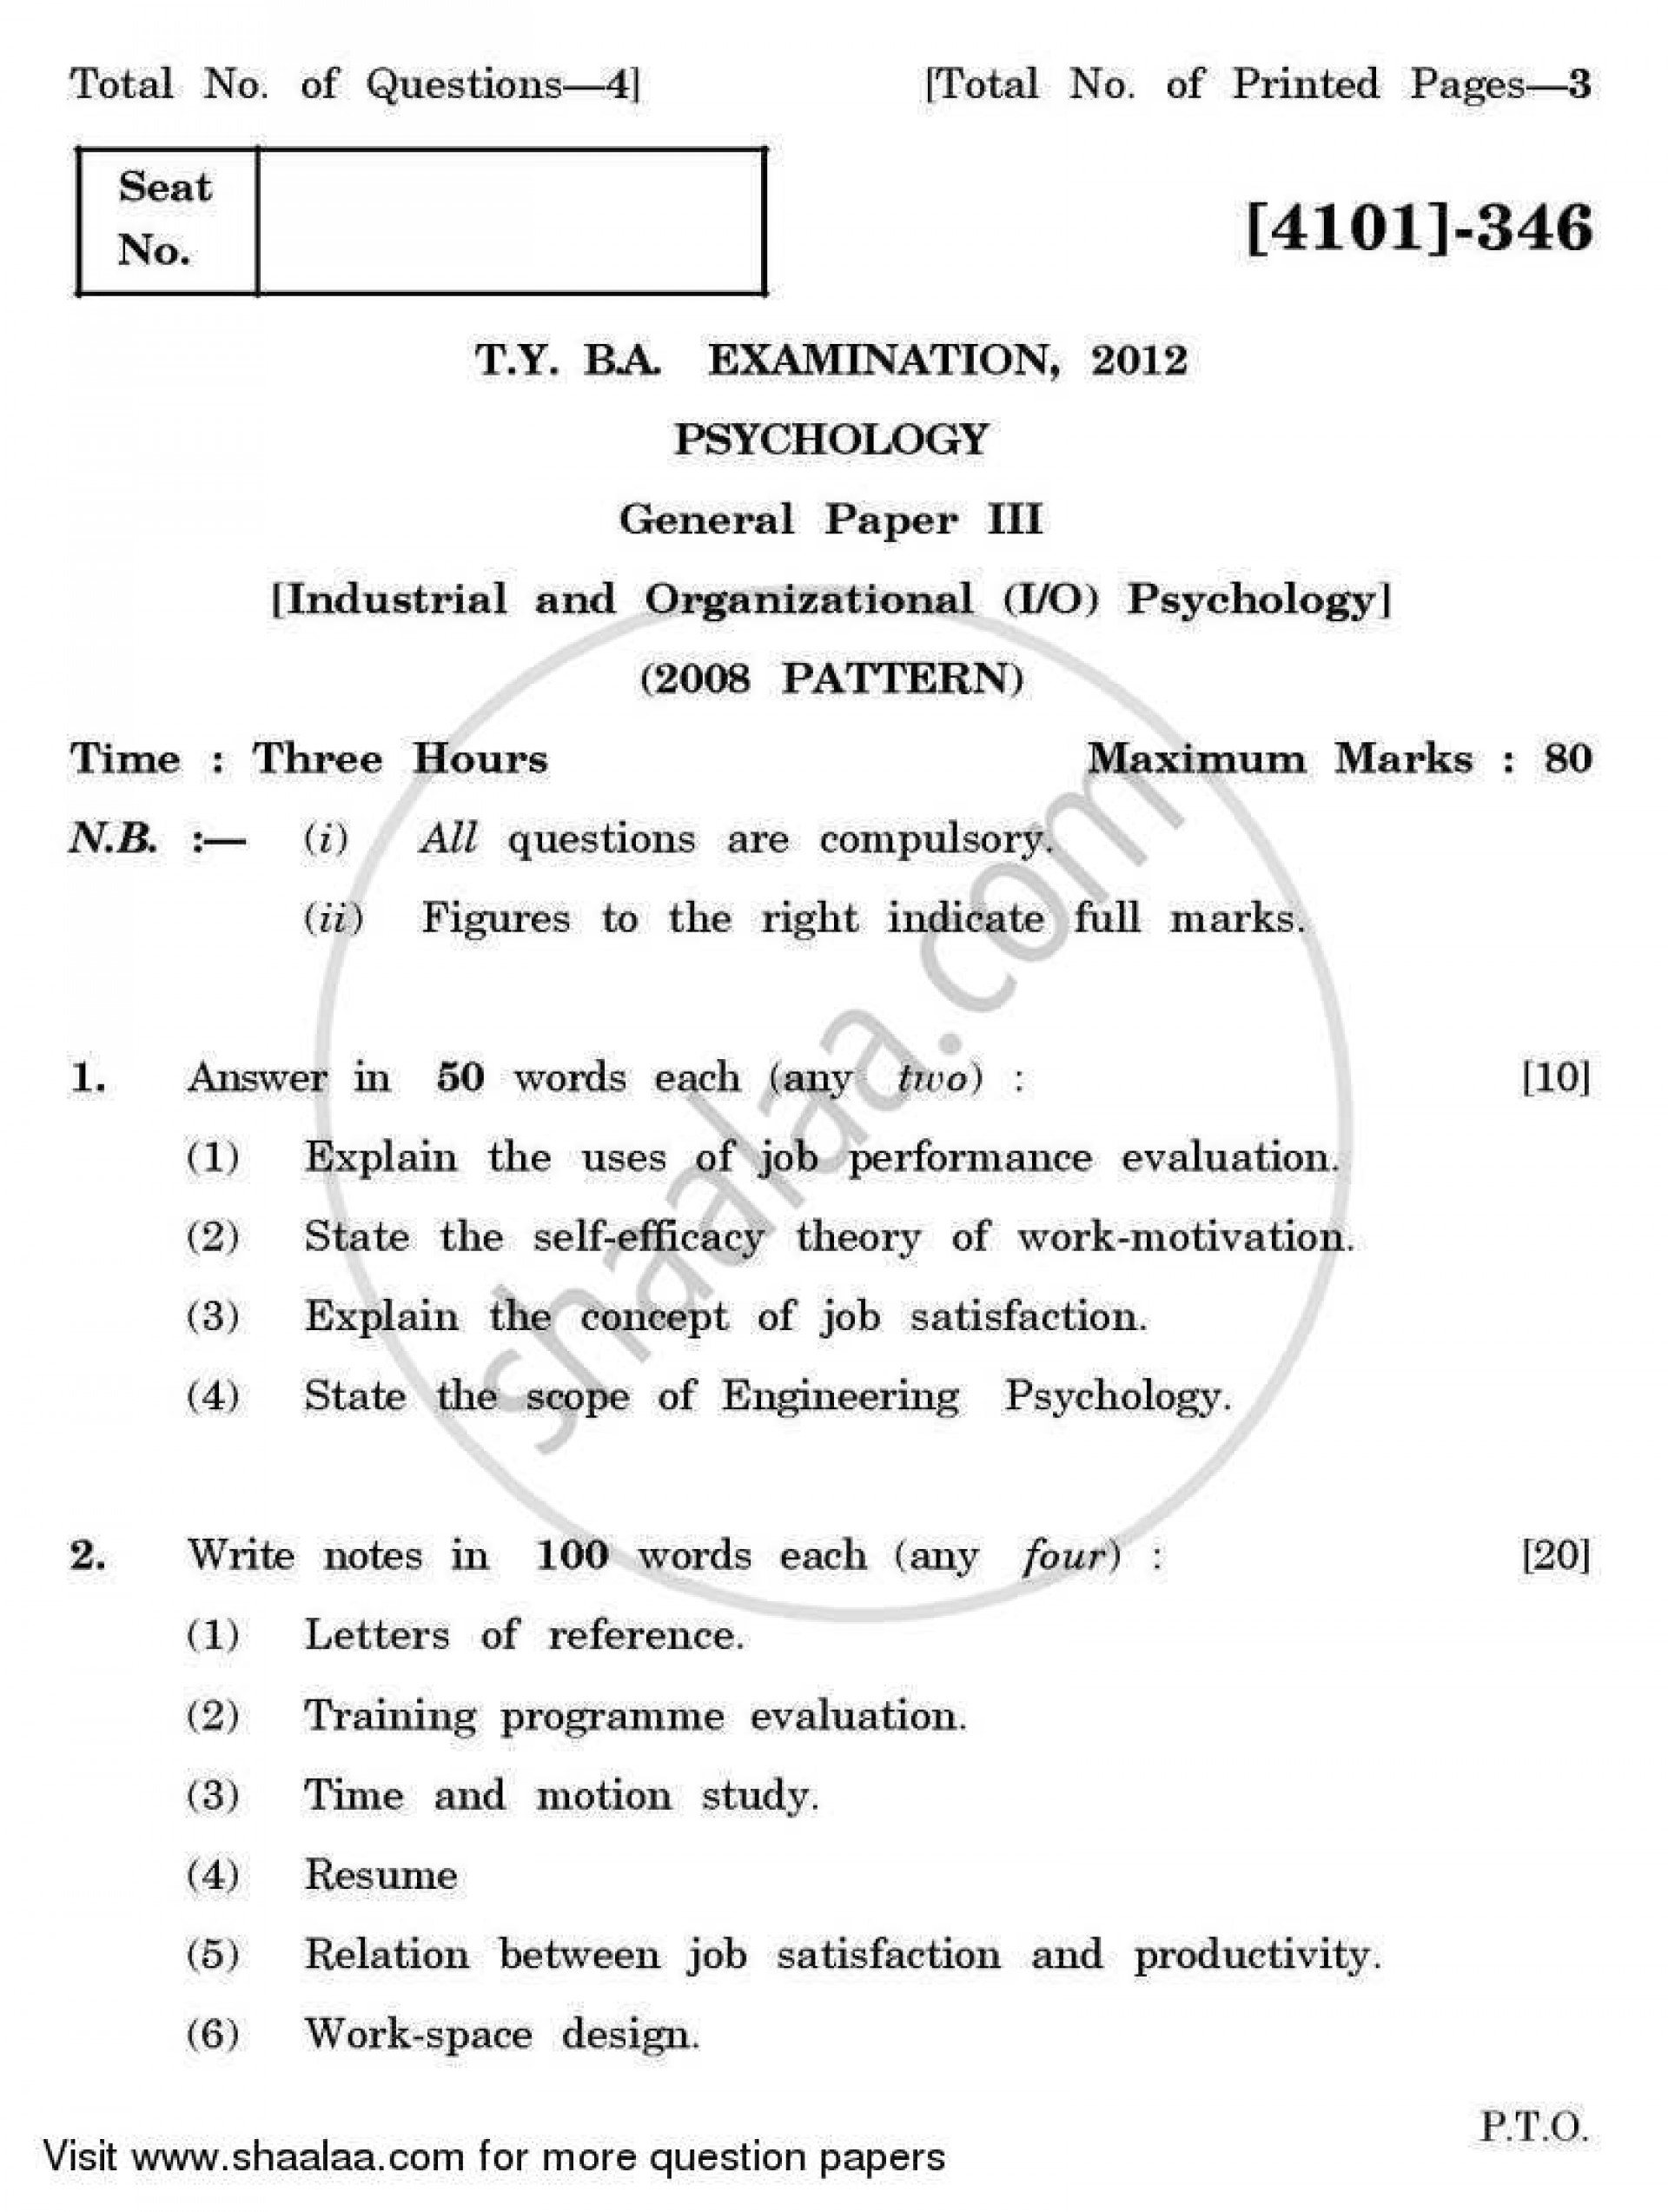 015 Research Papers For Psychology Paper University Of Pune Bachelor General Industrial Organizational Tyba 3rd Year 2011 2423148fb186f44d8a12cf9 Fascinating Topics Educational Types 1920